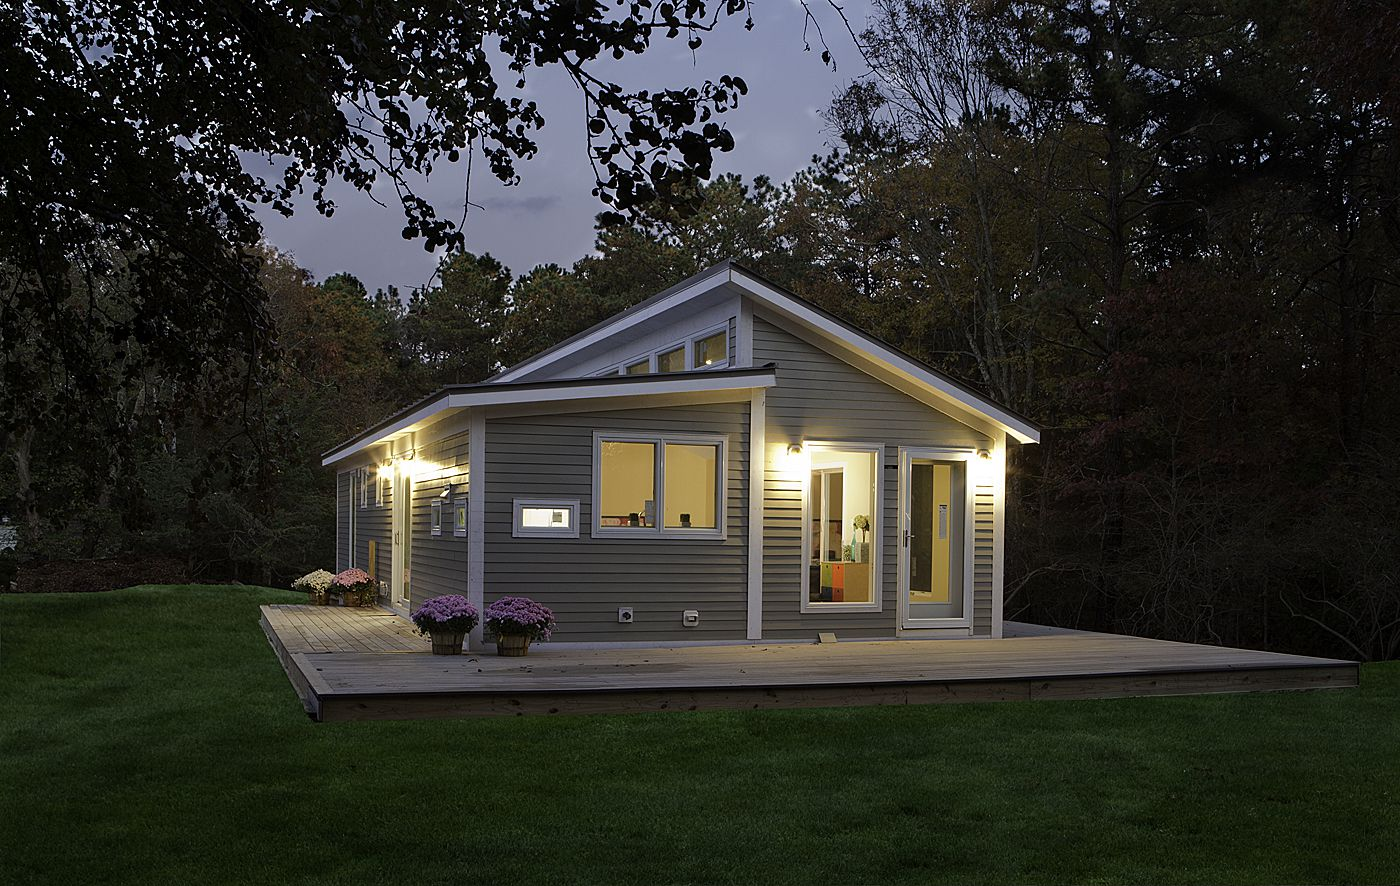 Incroyable Build The Small Prefab Homes With Grey Painted Wall And White Framed Glass  Windows